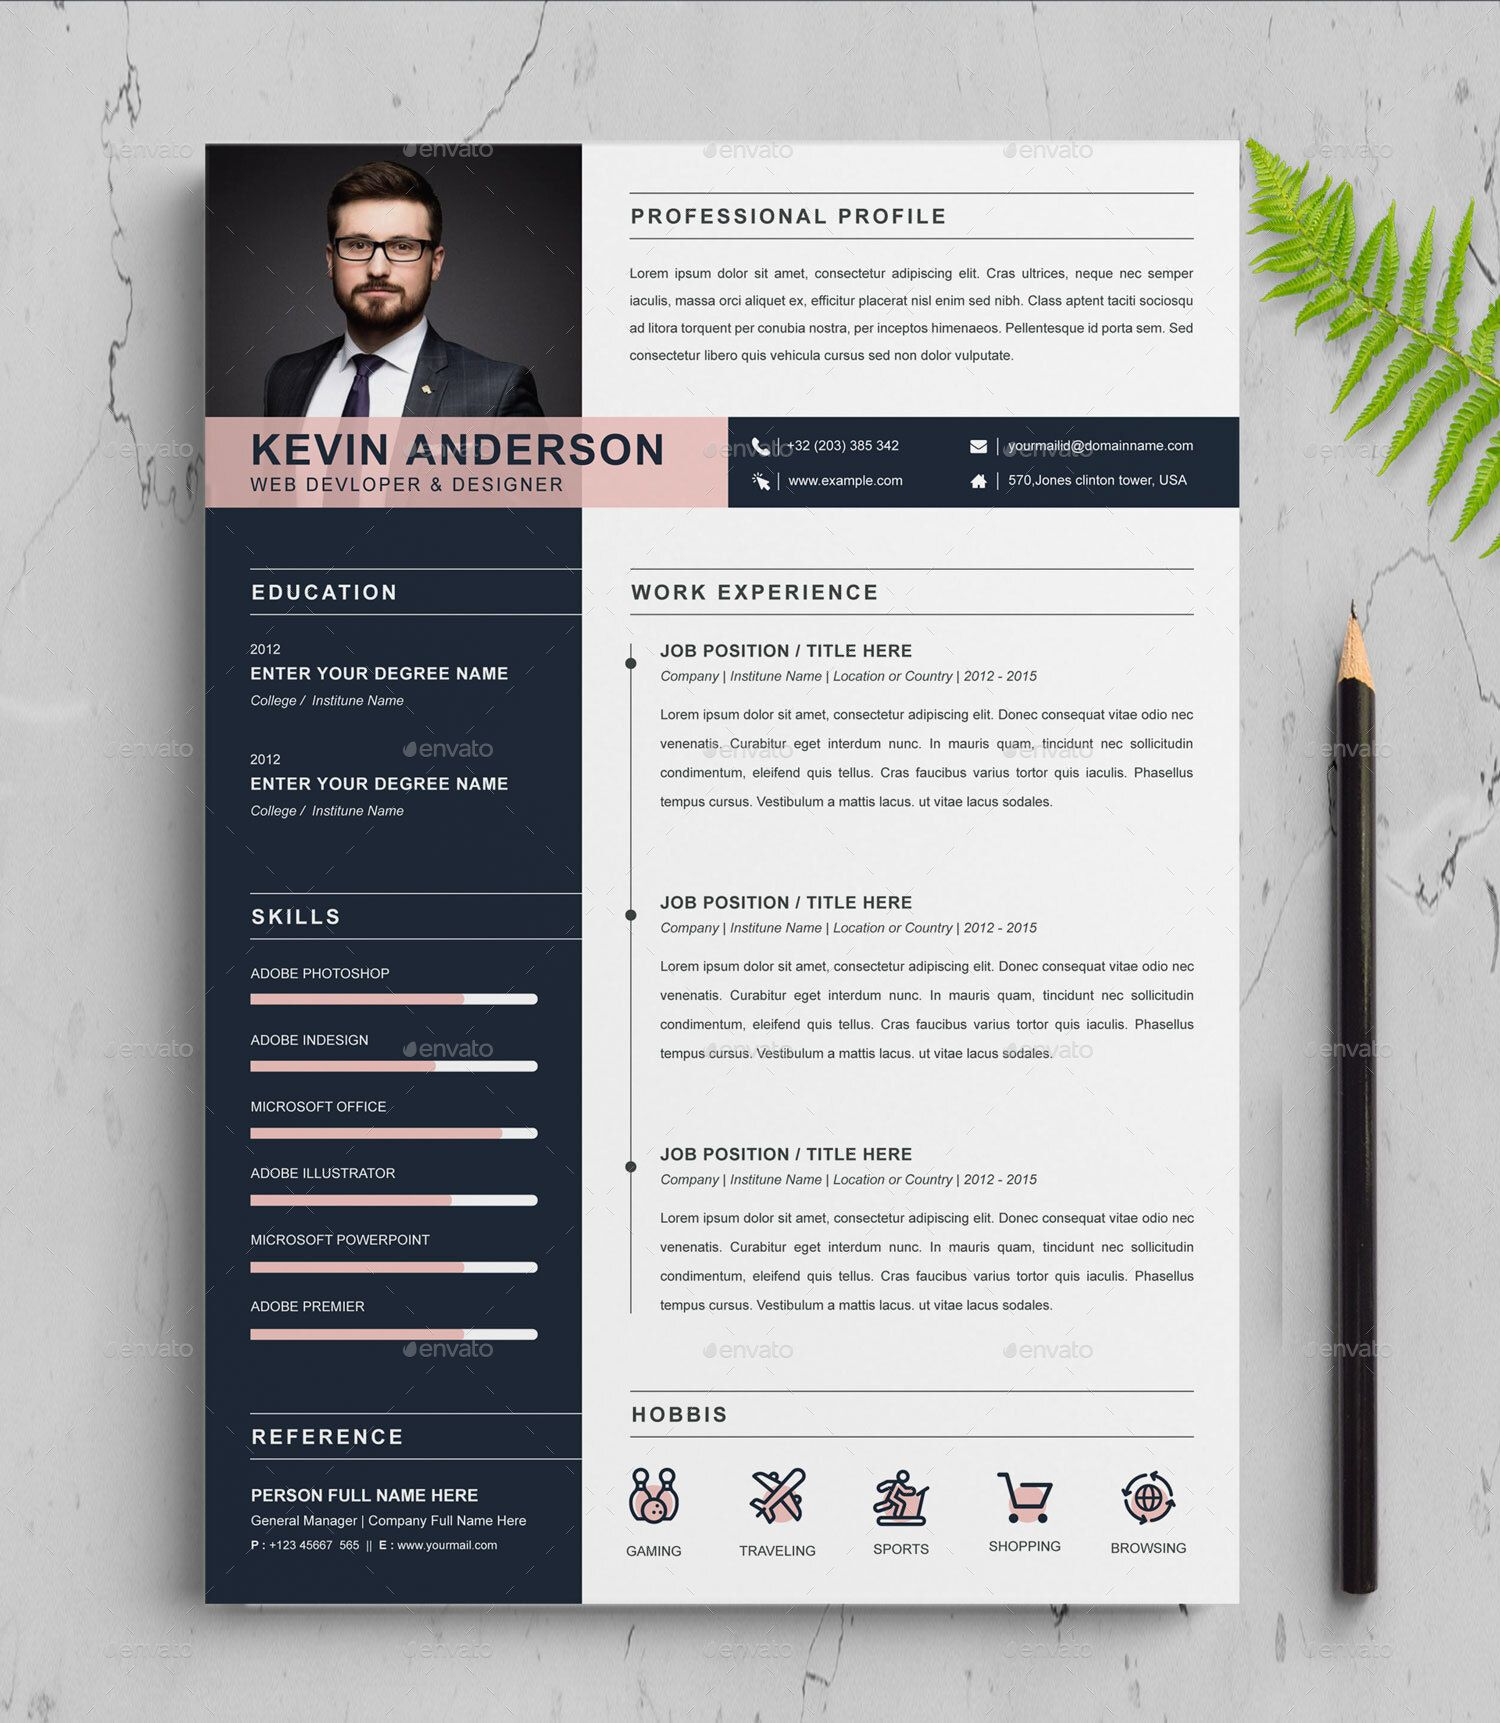 Resume Template Professional Resume Template Instant Download Resume Template Word Resume Writing Cv Cv Template Fame Nine Resume Resume Design Template Resume Design Resume Template Professional